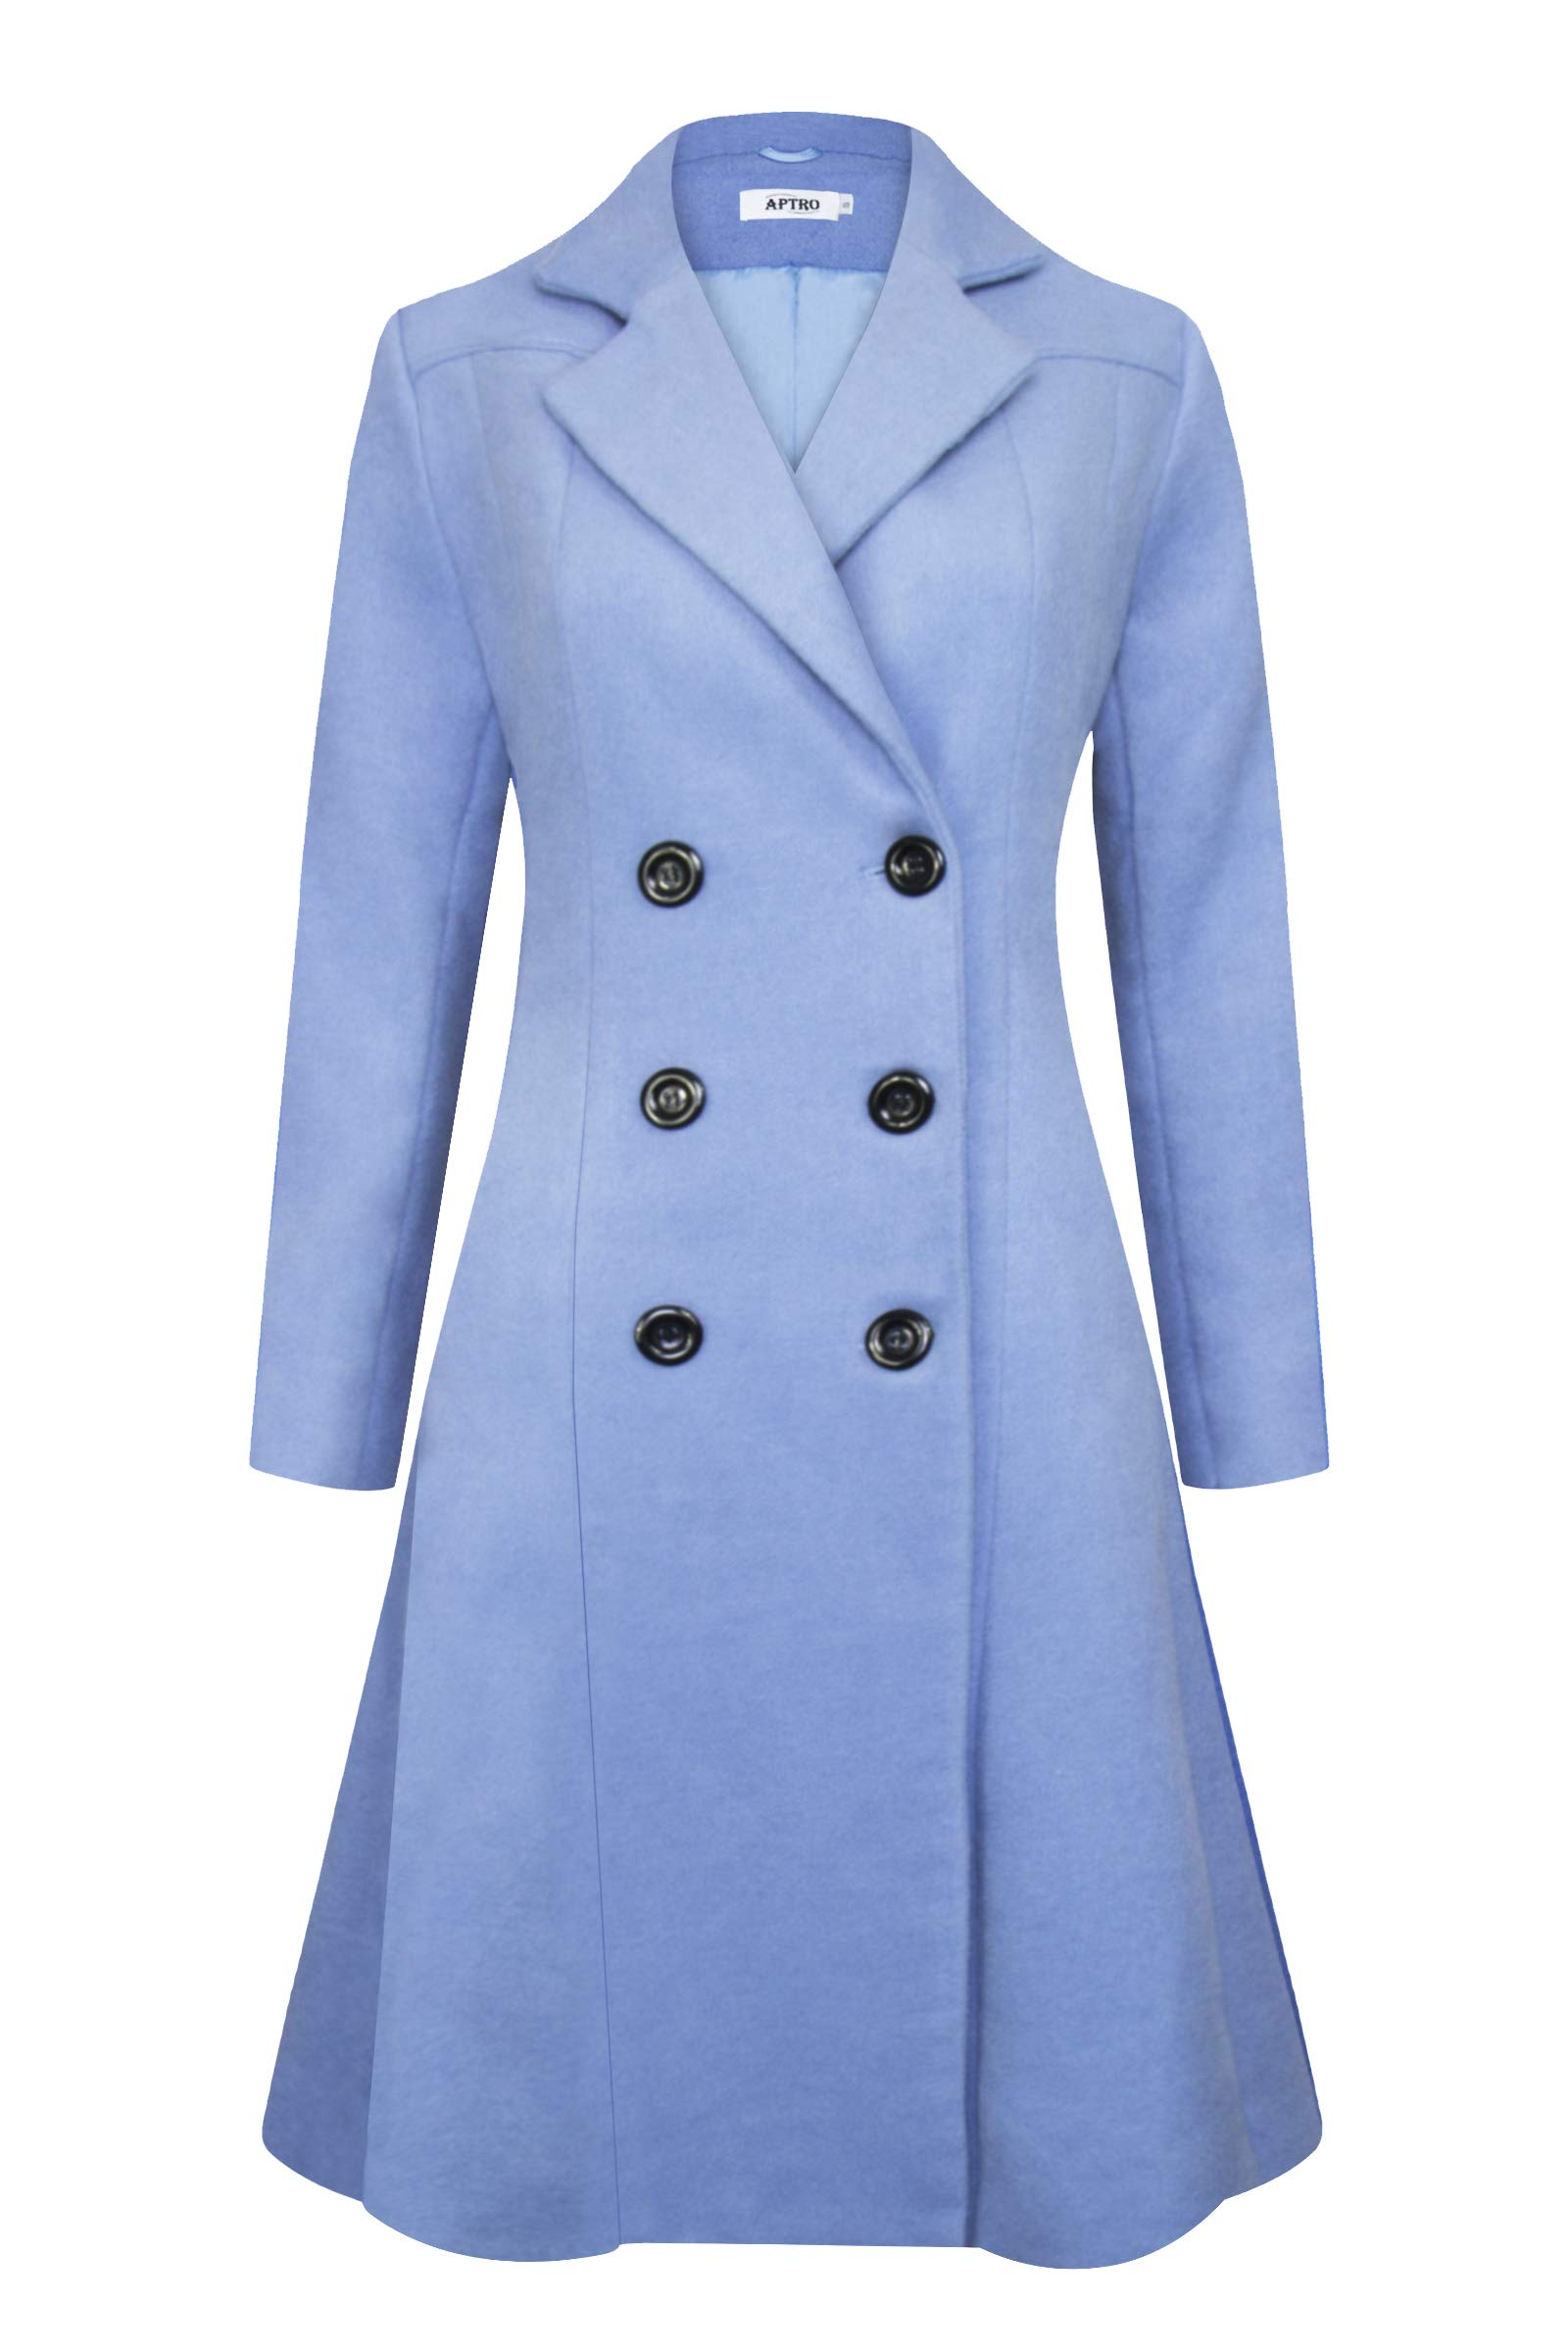 APTRO Women's Winter Lapel Double Breasted Wool Trench Coat Long Overcoat (XL, WS02 Blue)